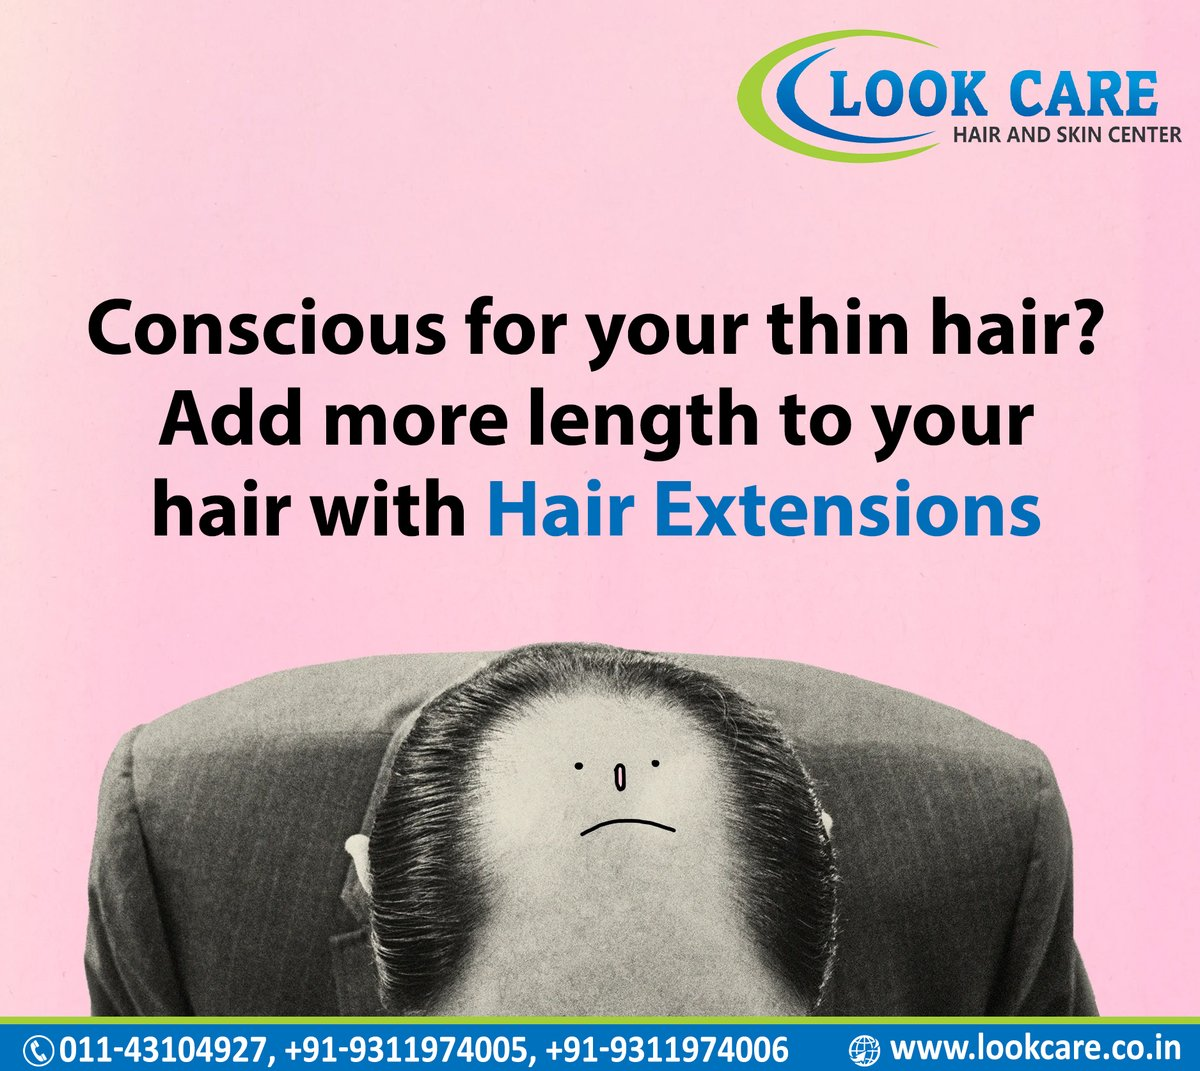 Conscious for your thin hair ?? Add more length to your Hair with Hair Extensions at Lookcare  Book your appointment now .  Contact. 011-43104927, 9311974005 , 9311974006.  #Hairextensions #Baldness #Hairpatchservice #HairLoss #HairPatchtreatment #Nonsurgicaltreatment #Baldness https://t.co/55Hs5gtG7U